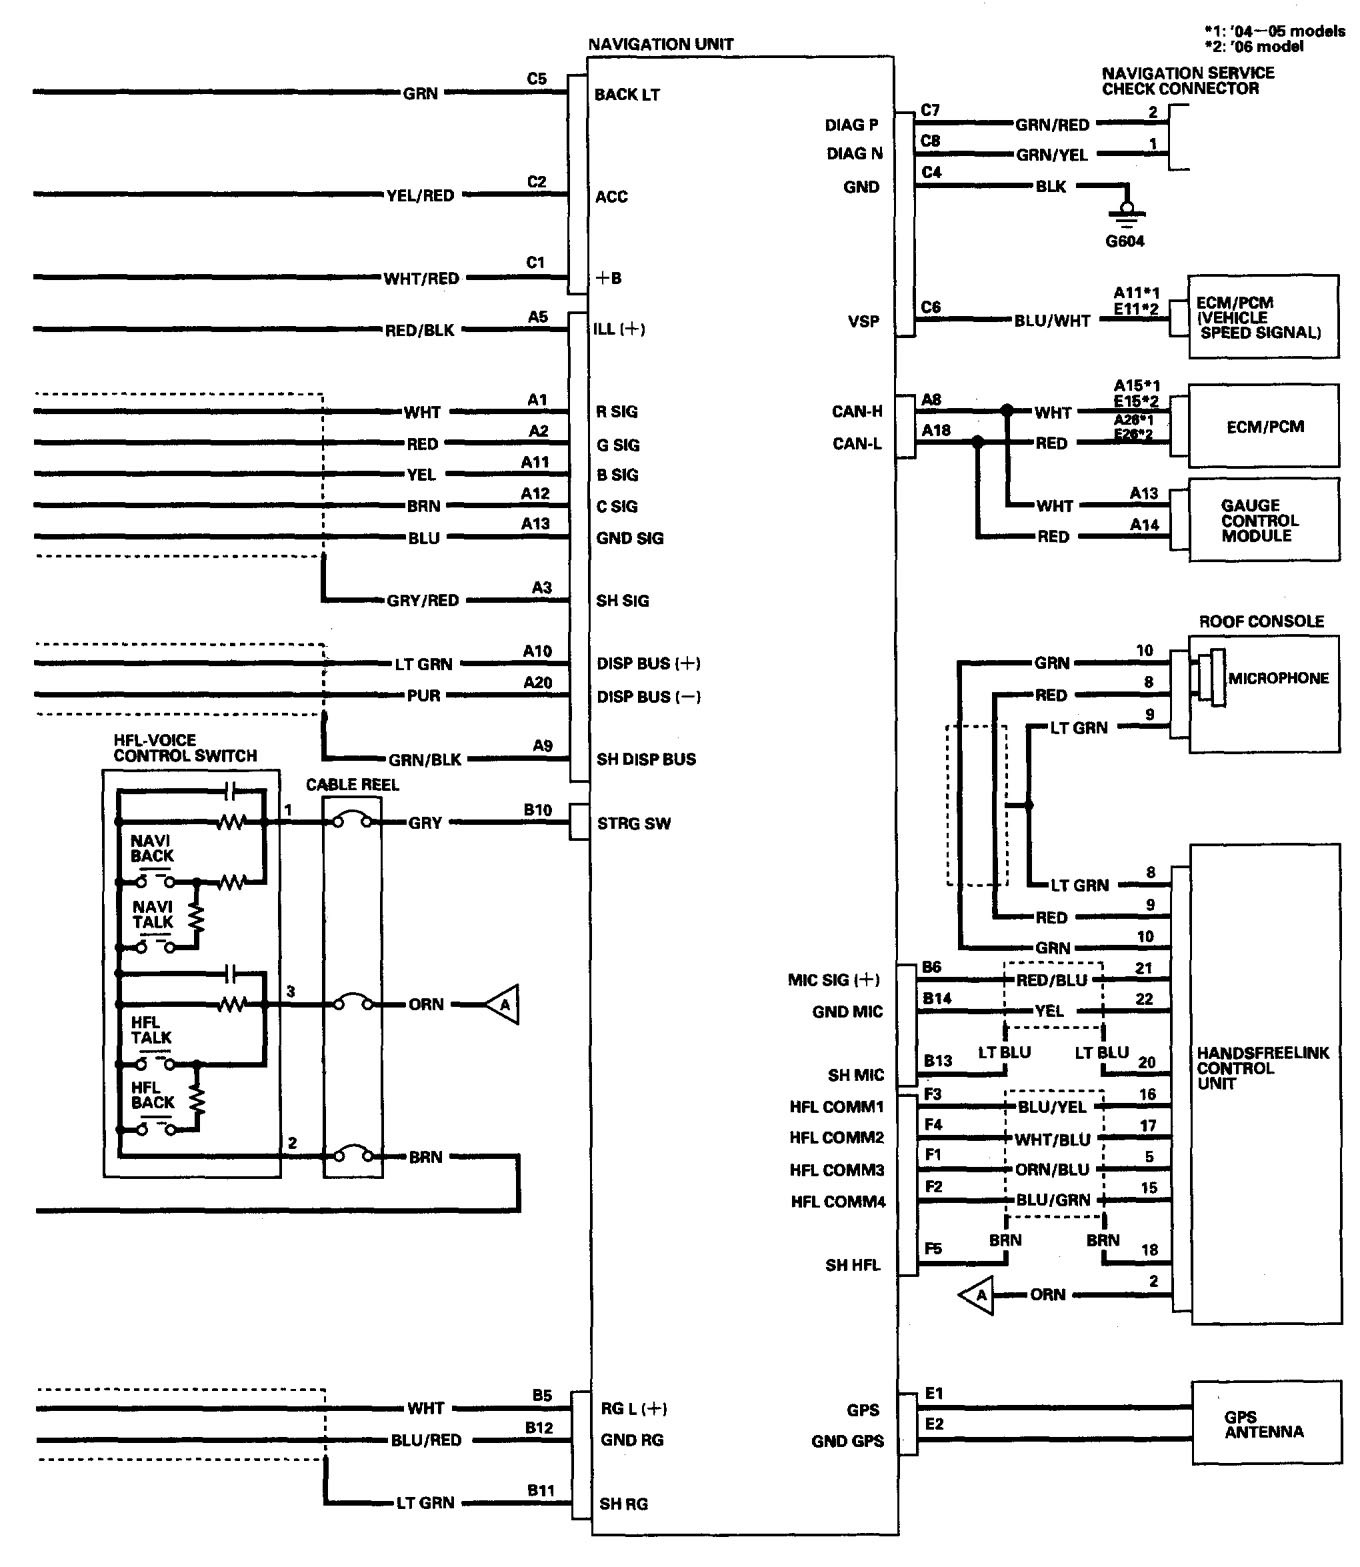 2006 acura tl ignition wiring diagram 37 wiring diagram images wiring  diagrams creativeand co 2006 acura tl wiring diagram 2003 acura tl wiring  diagram